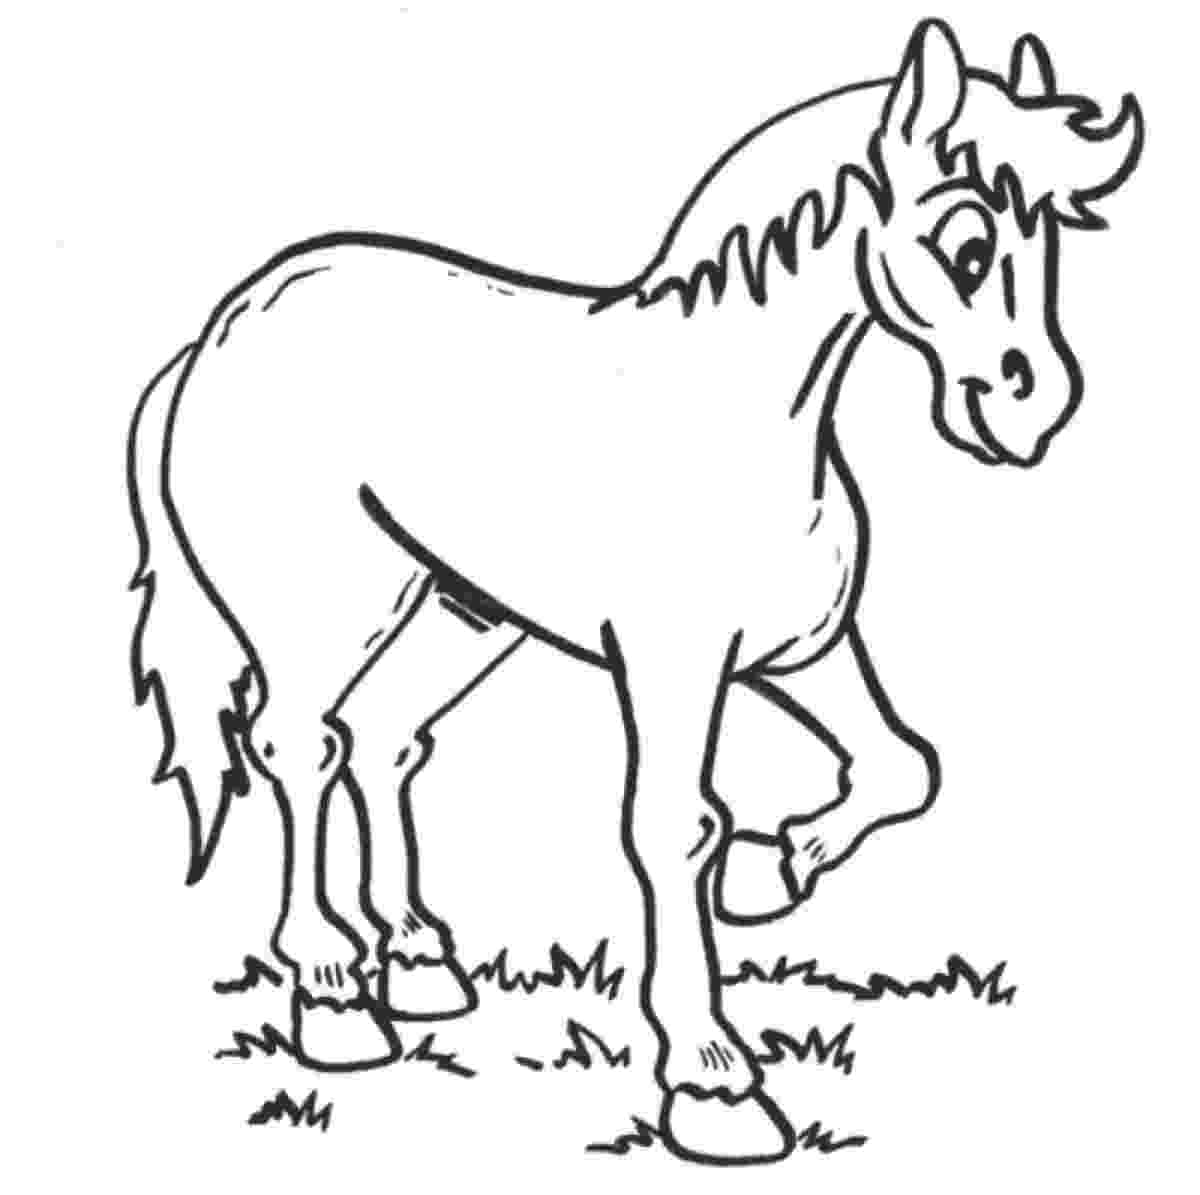 mammals coloring pages free pictures of mammals to print download free clip art mammals coloring pages 1 1